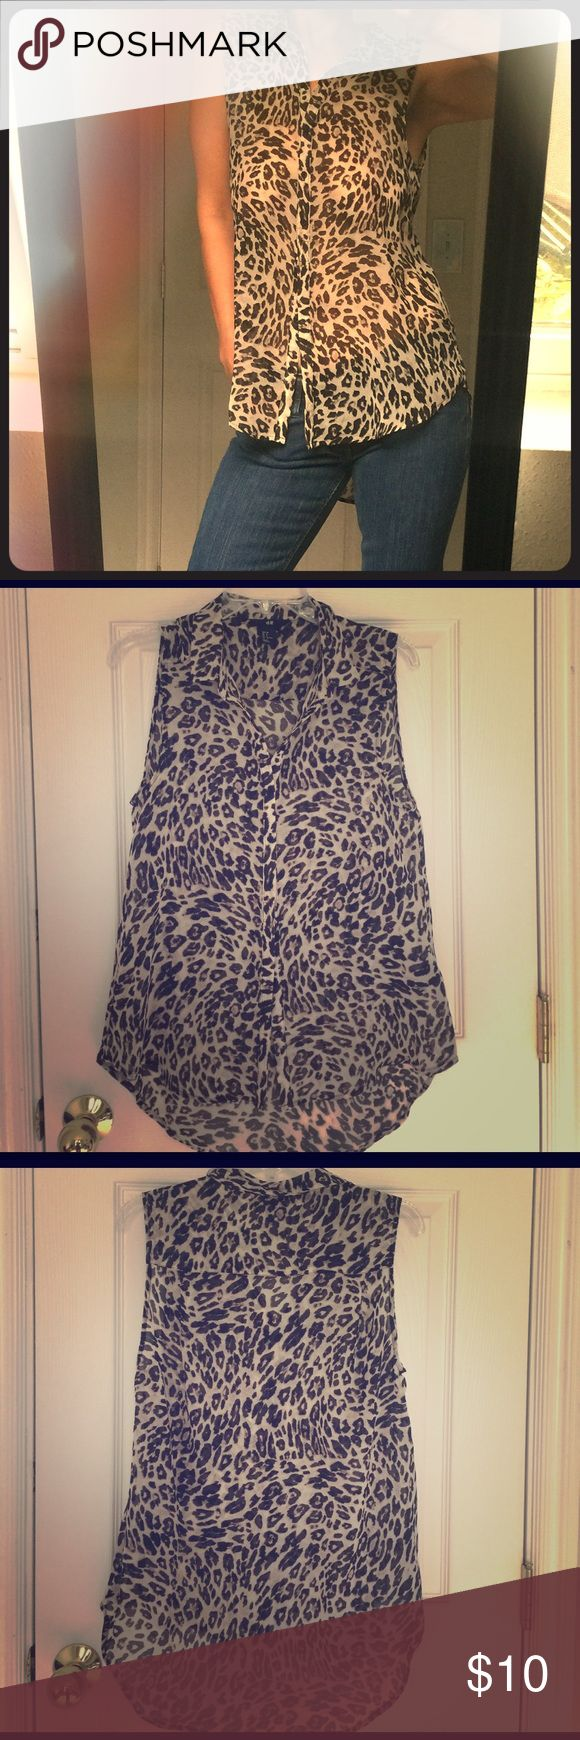 H&M short sleeveless button up leopard print shirt Perfect used condition, in a size 8 is the super sheer button up sleeveless shirt in leopard print. Free of stain, rip or tear. Smoke and pet free! H&M Tops Button Down Shirts